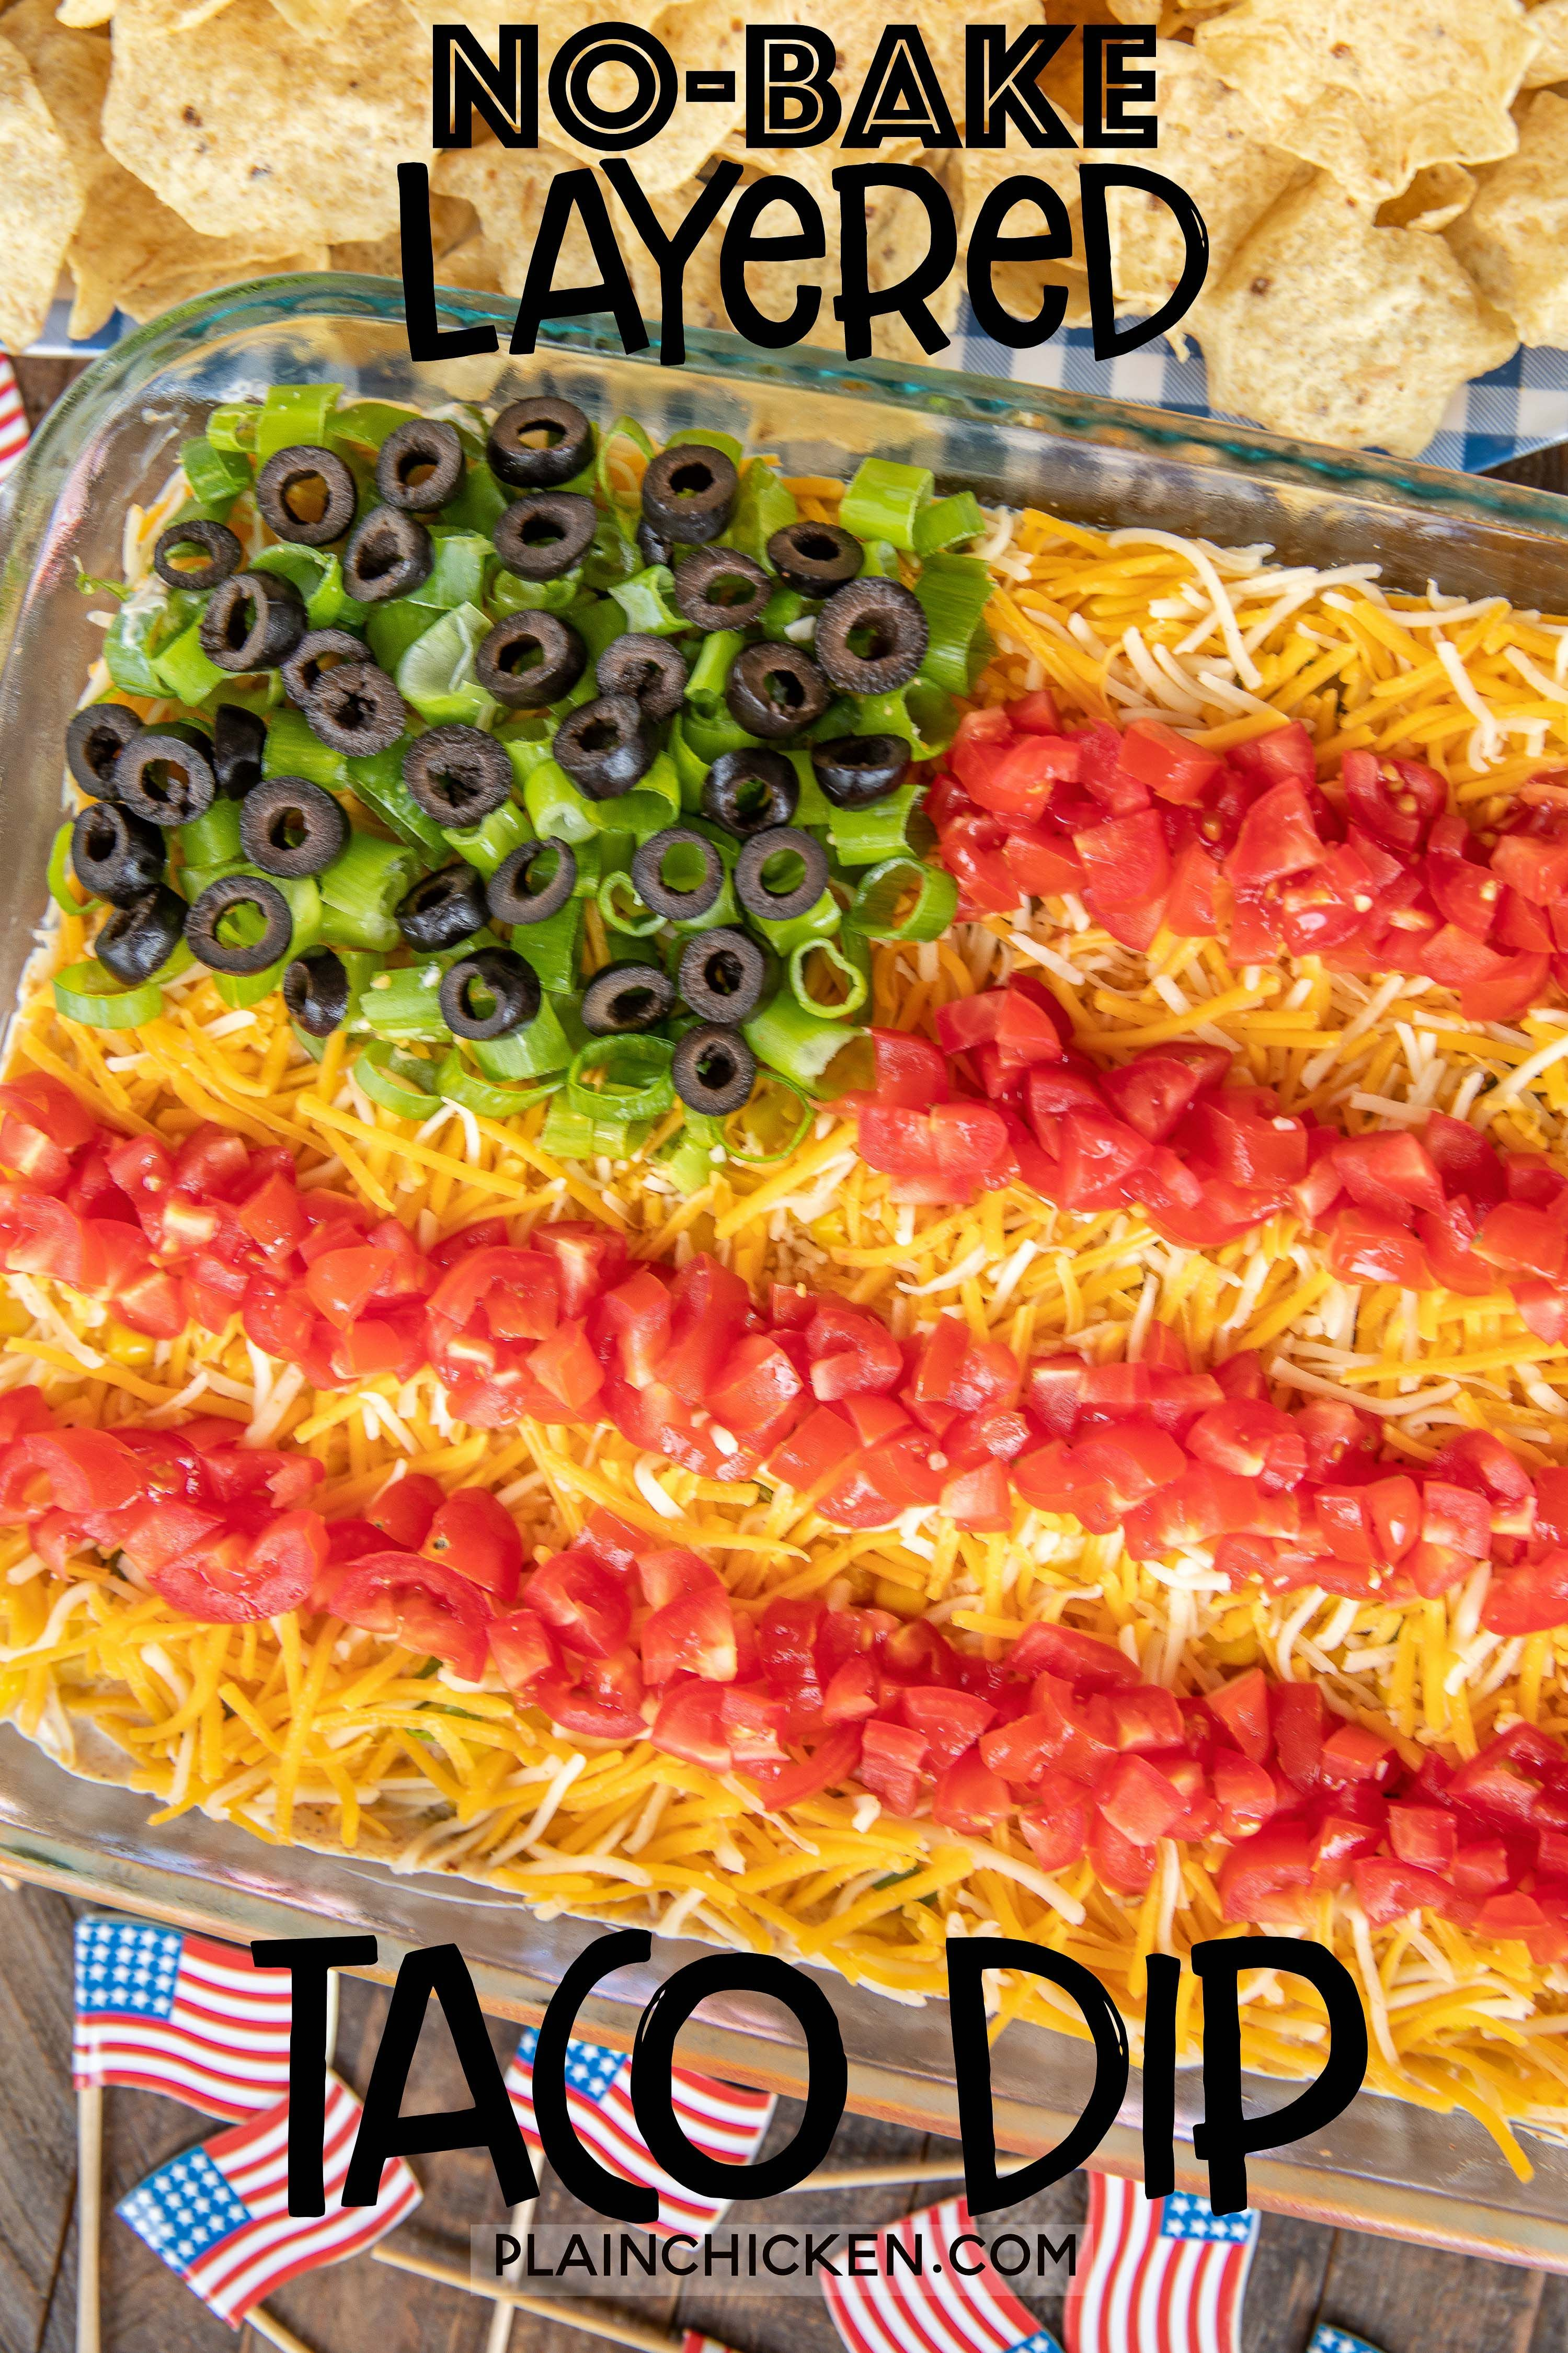 No Bake 7 Layer Taco Dip In Flag Shape Recipe Such A Fun And Patriotic Dip For Memorial Day 4th Of July And Labor Layered Taco Dip Taco Dip Taco Dip Recipe